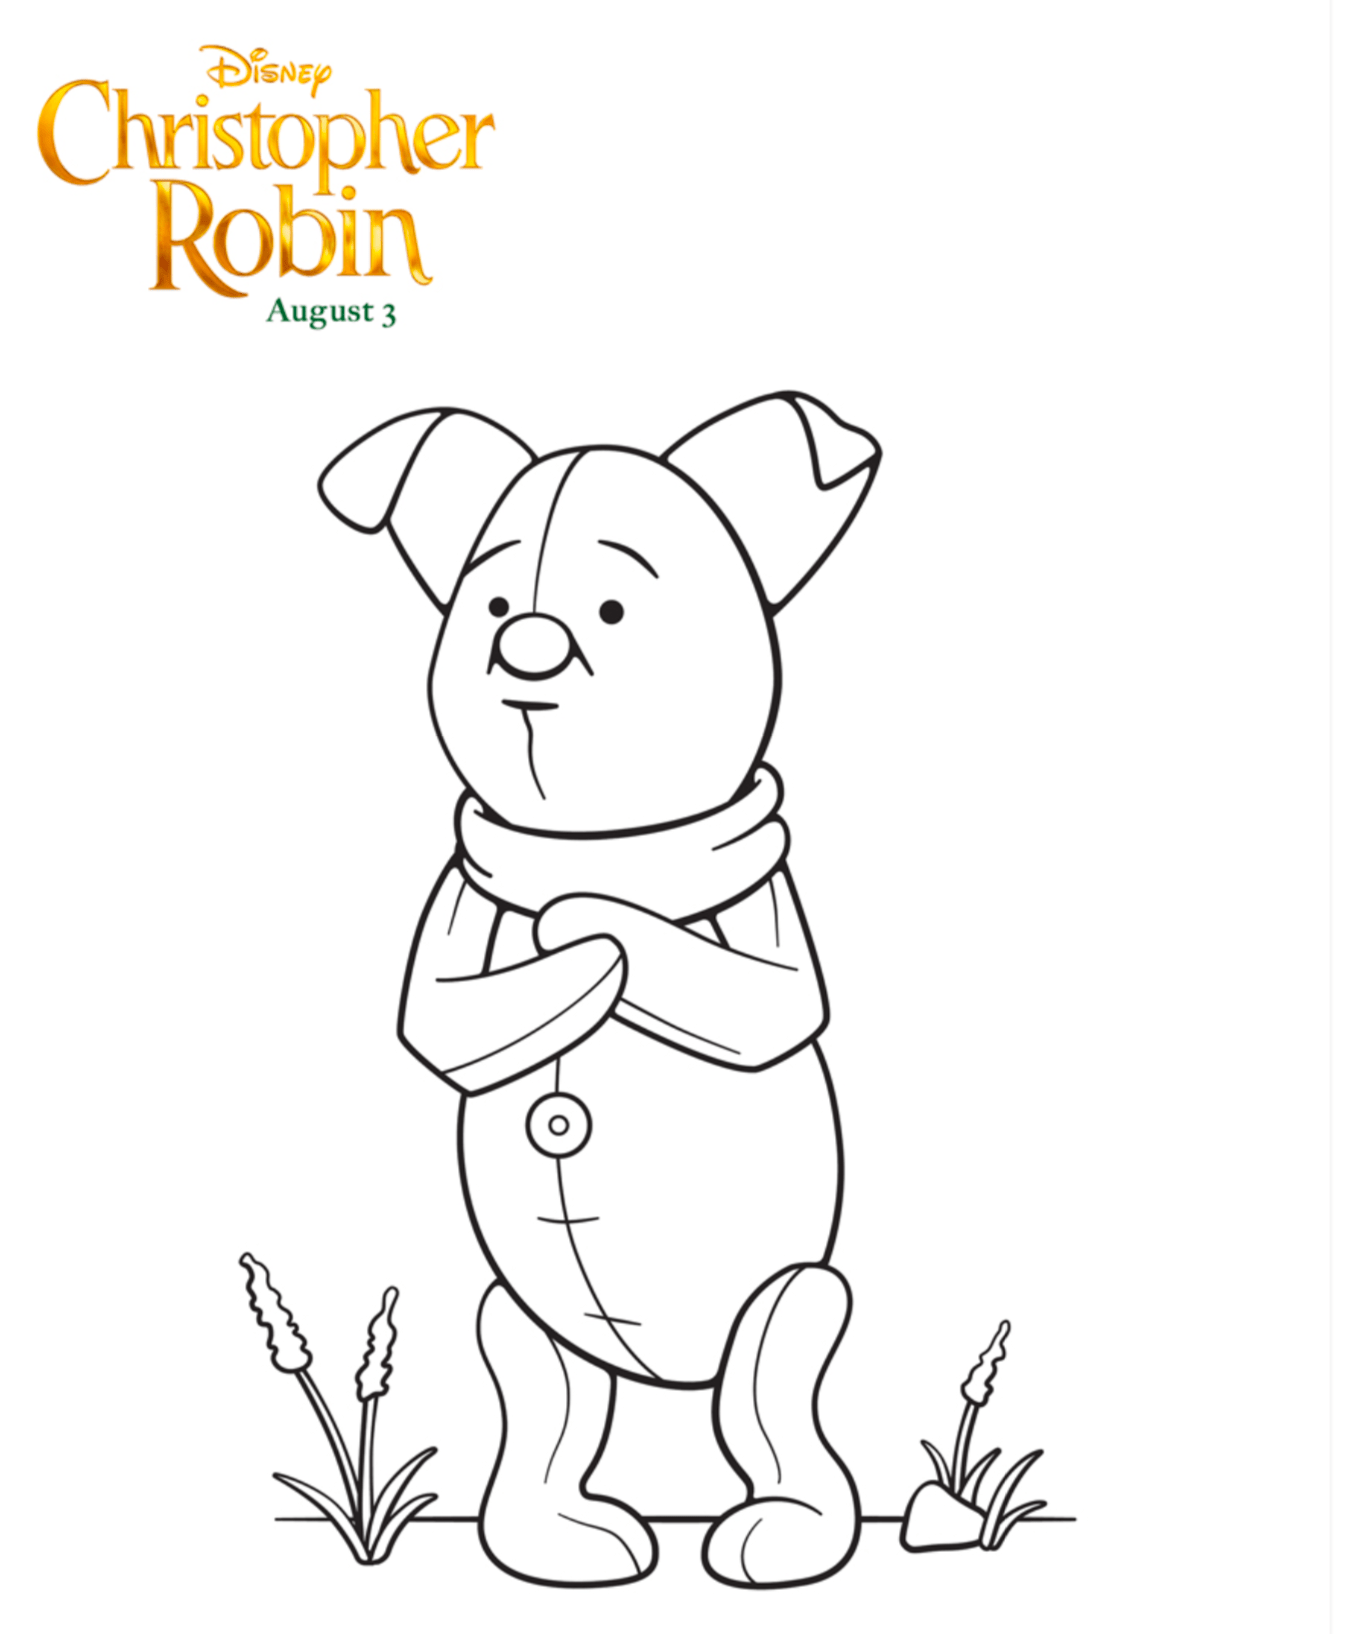 Free Printable Disney Christopher Robin Coloring Pages